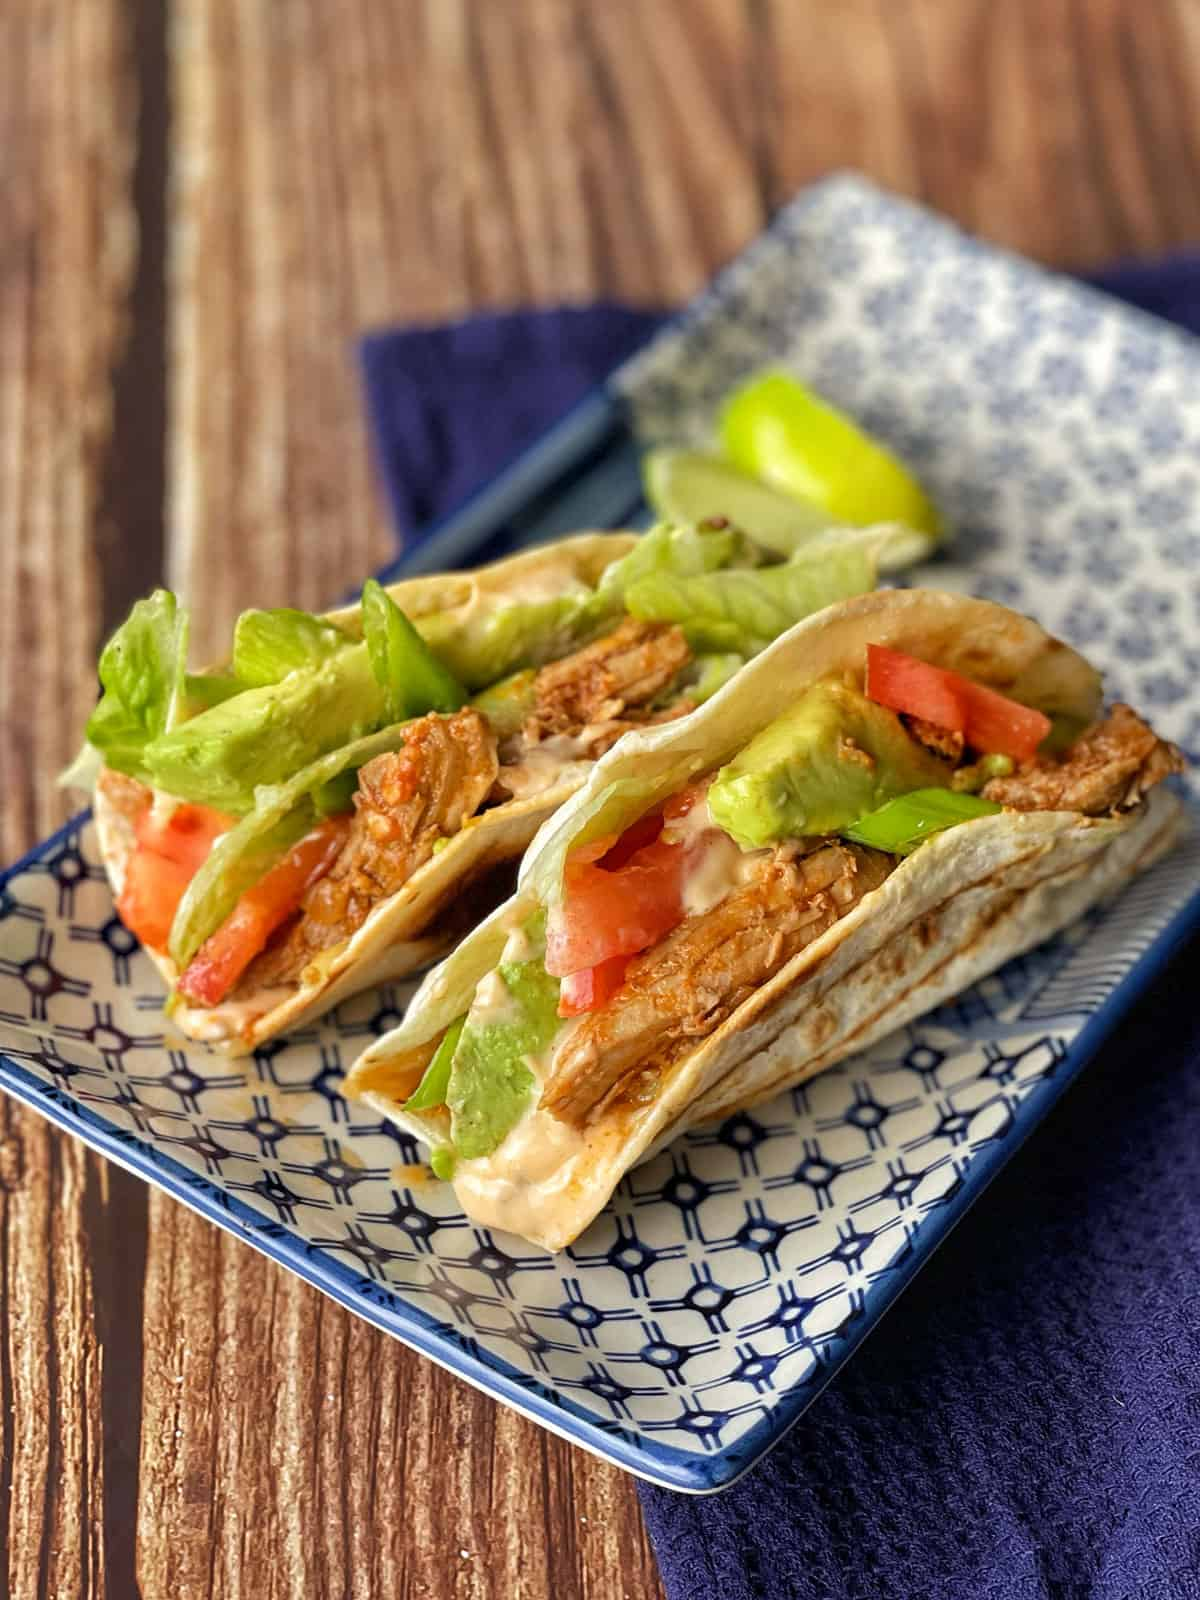 Two tortilla filled with pork and salad sitting on a white platter.